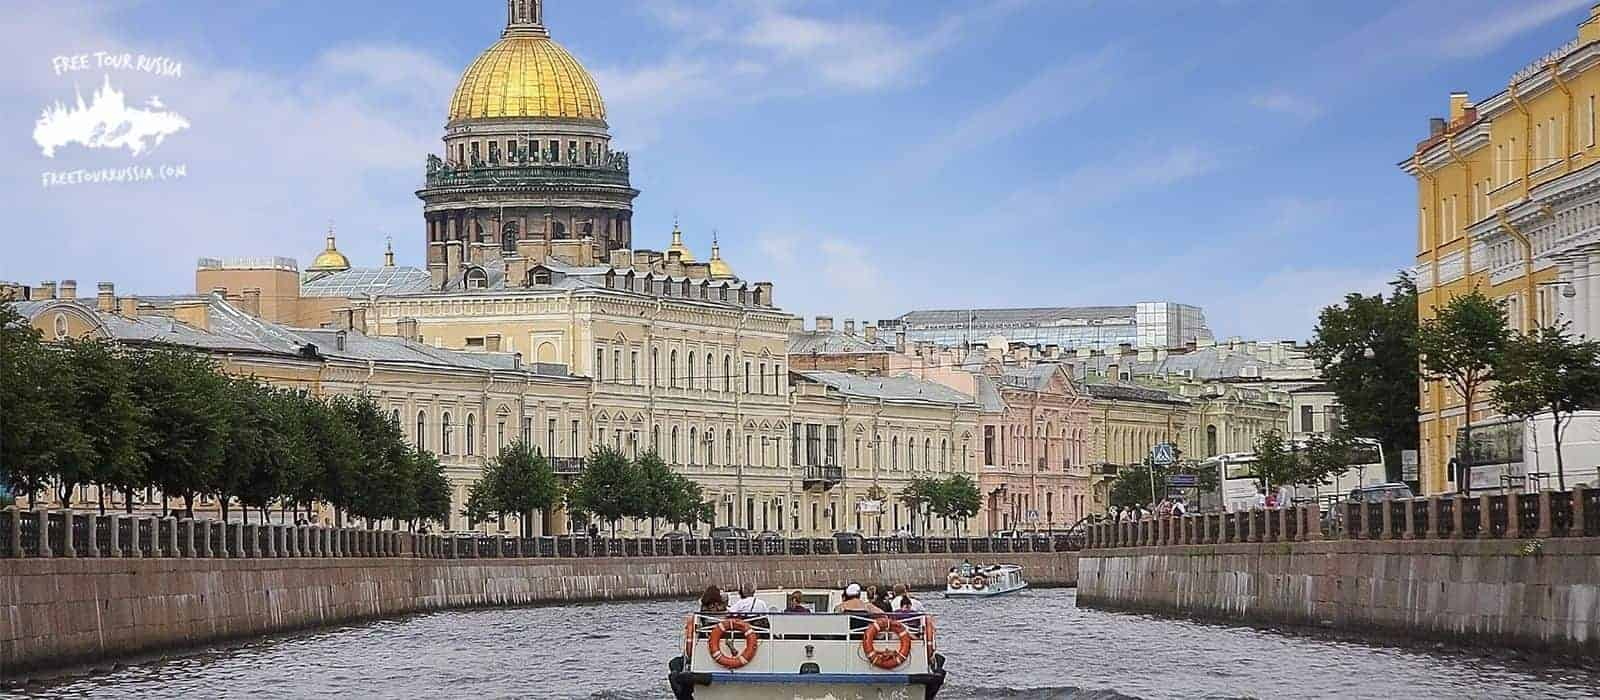 Short Package Tour: Free Downtown Tour and Metro in St. Petersburg